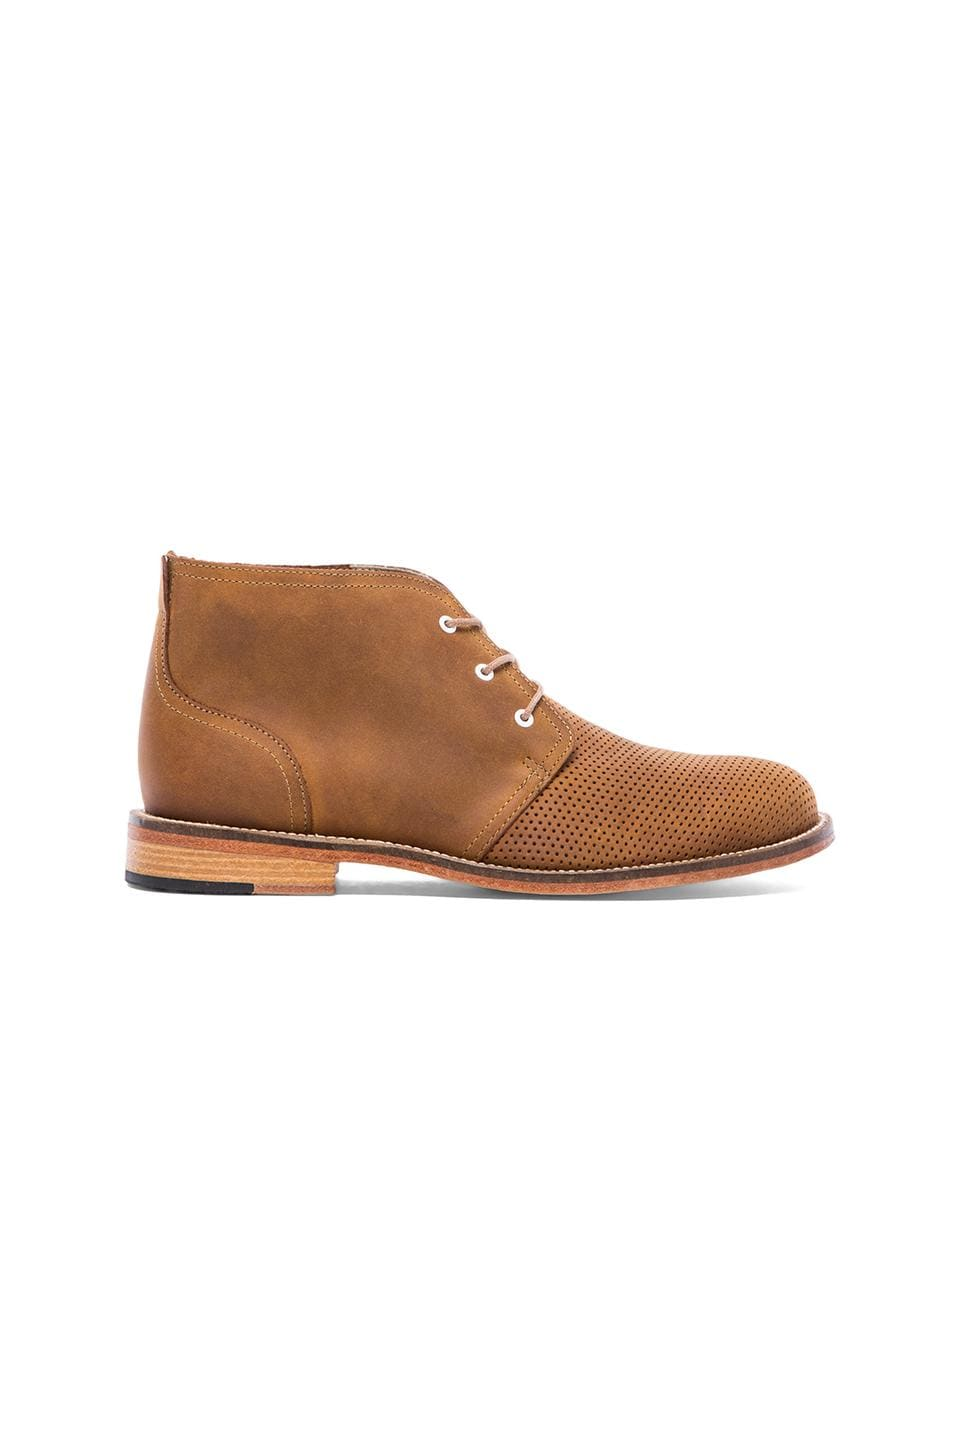 J SHOES Monarch 2 in Mid Brown